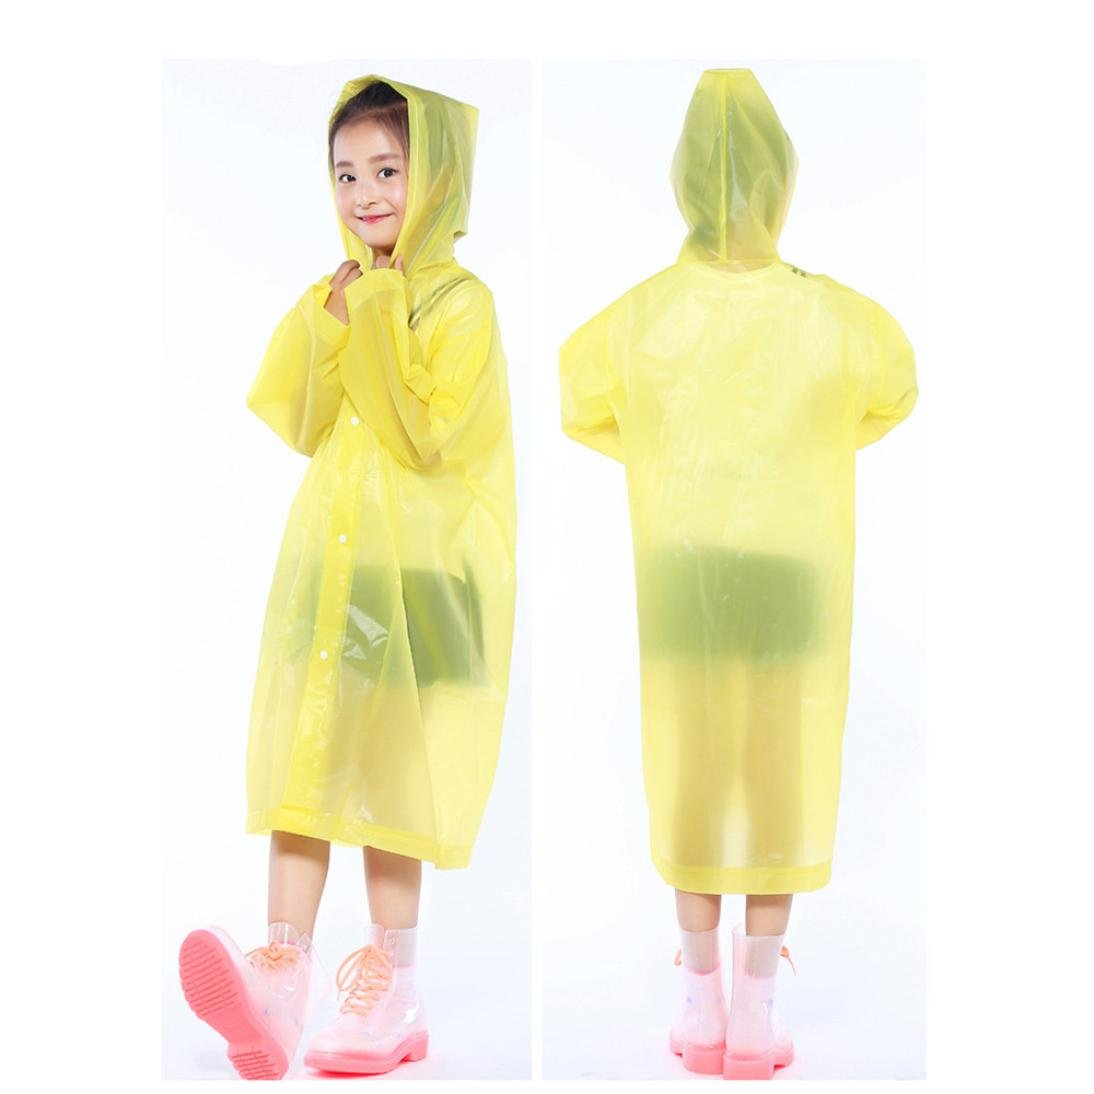 Tpingfe Portable Reusable Raincoats Children Rain Ponchos For 6-12 Years Old, 1PC (Yellow) by Tpingfe (Image #2)